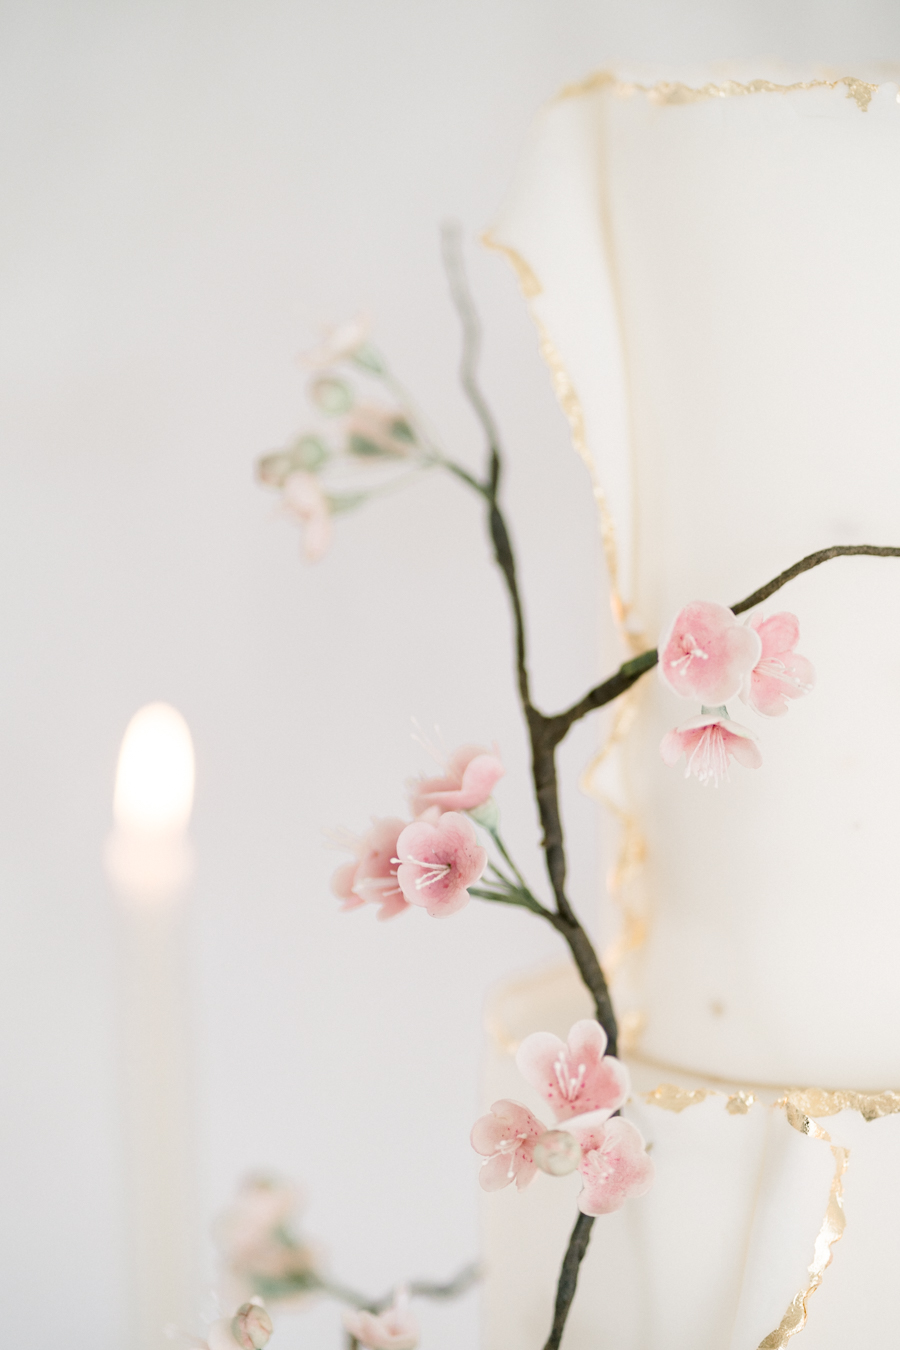 Spring blossom wedding style inspiration and ideas with Chloe Ely Photography at Barton Court (3)